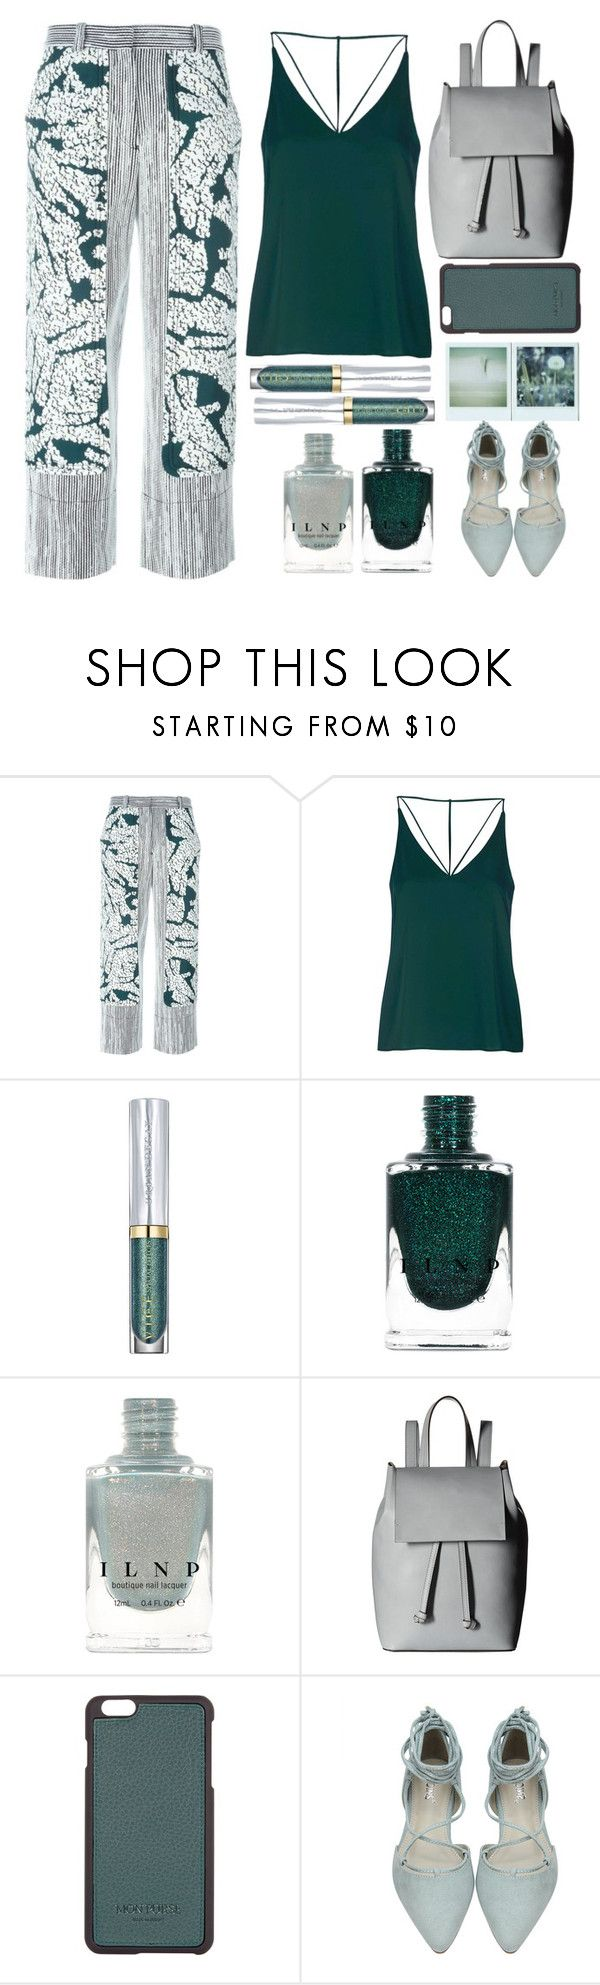 """Peacock"" by juliehalloran ❤ liked on Polyvore featuring Cédric Charlier, Topshop, Urban Decay, French Connection, Mon Purse and Polaroid"